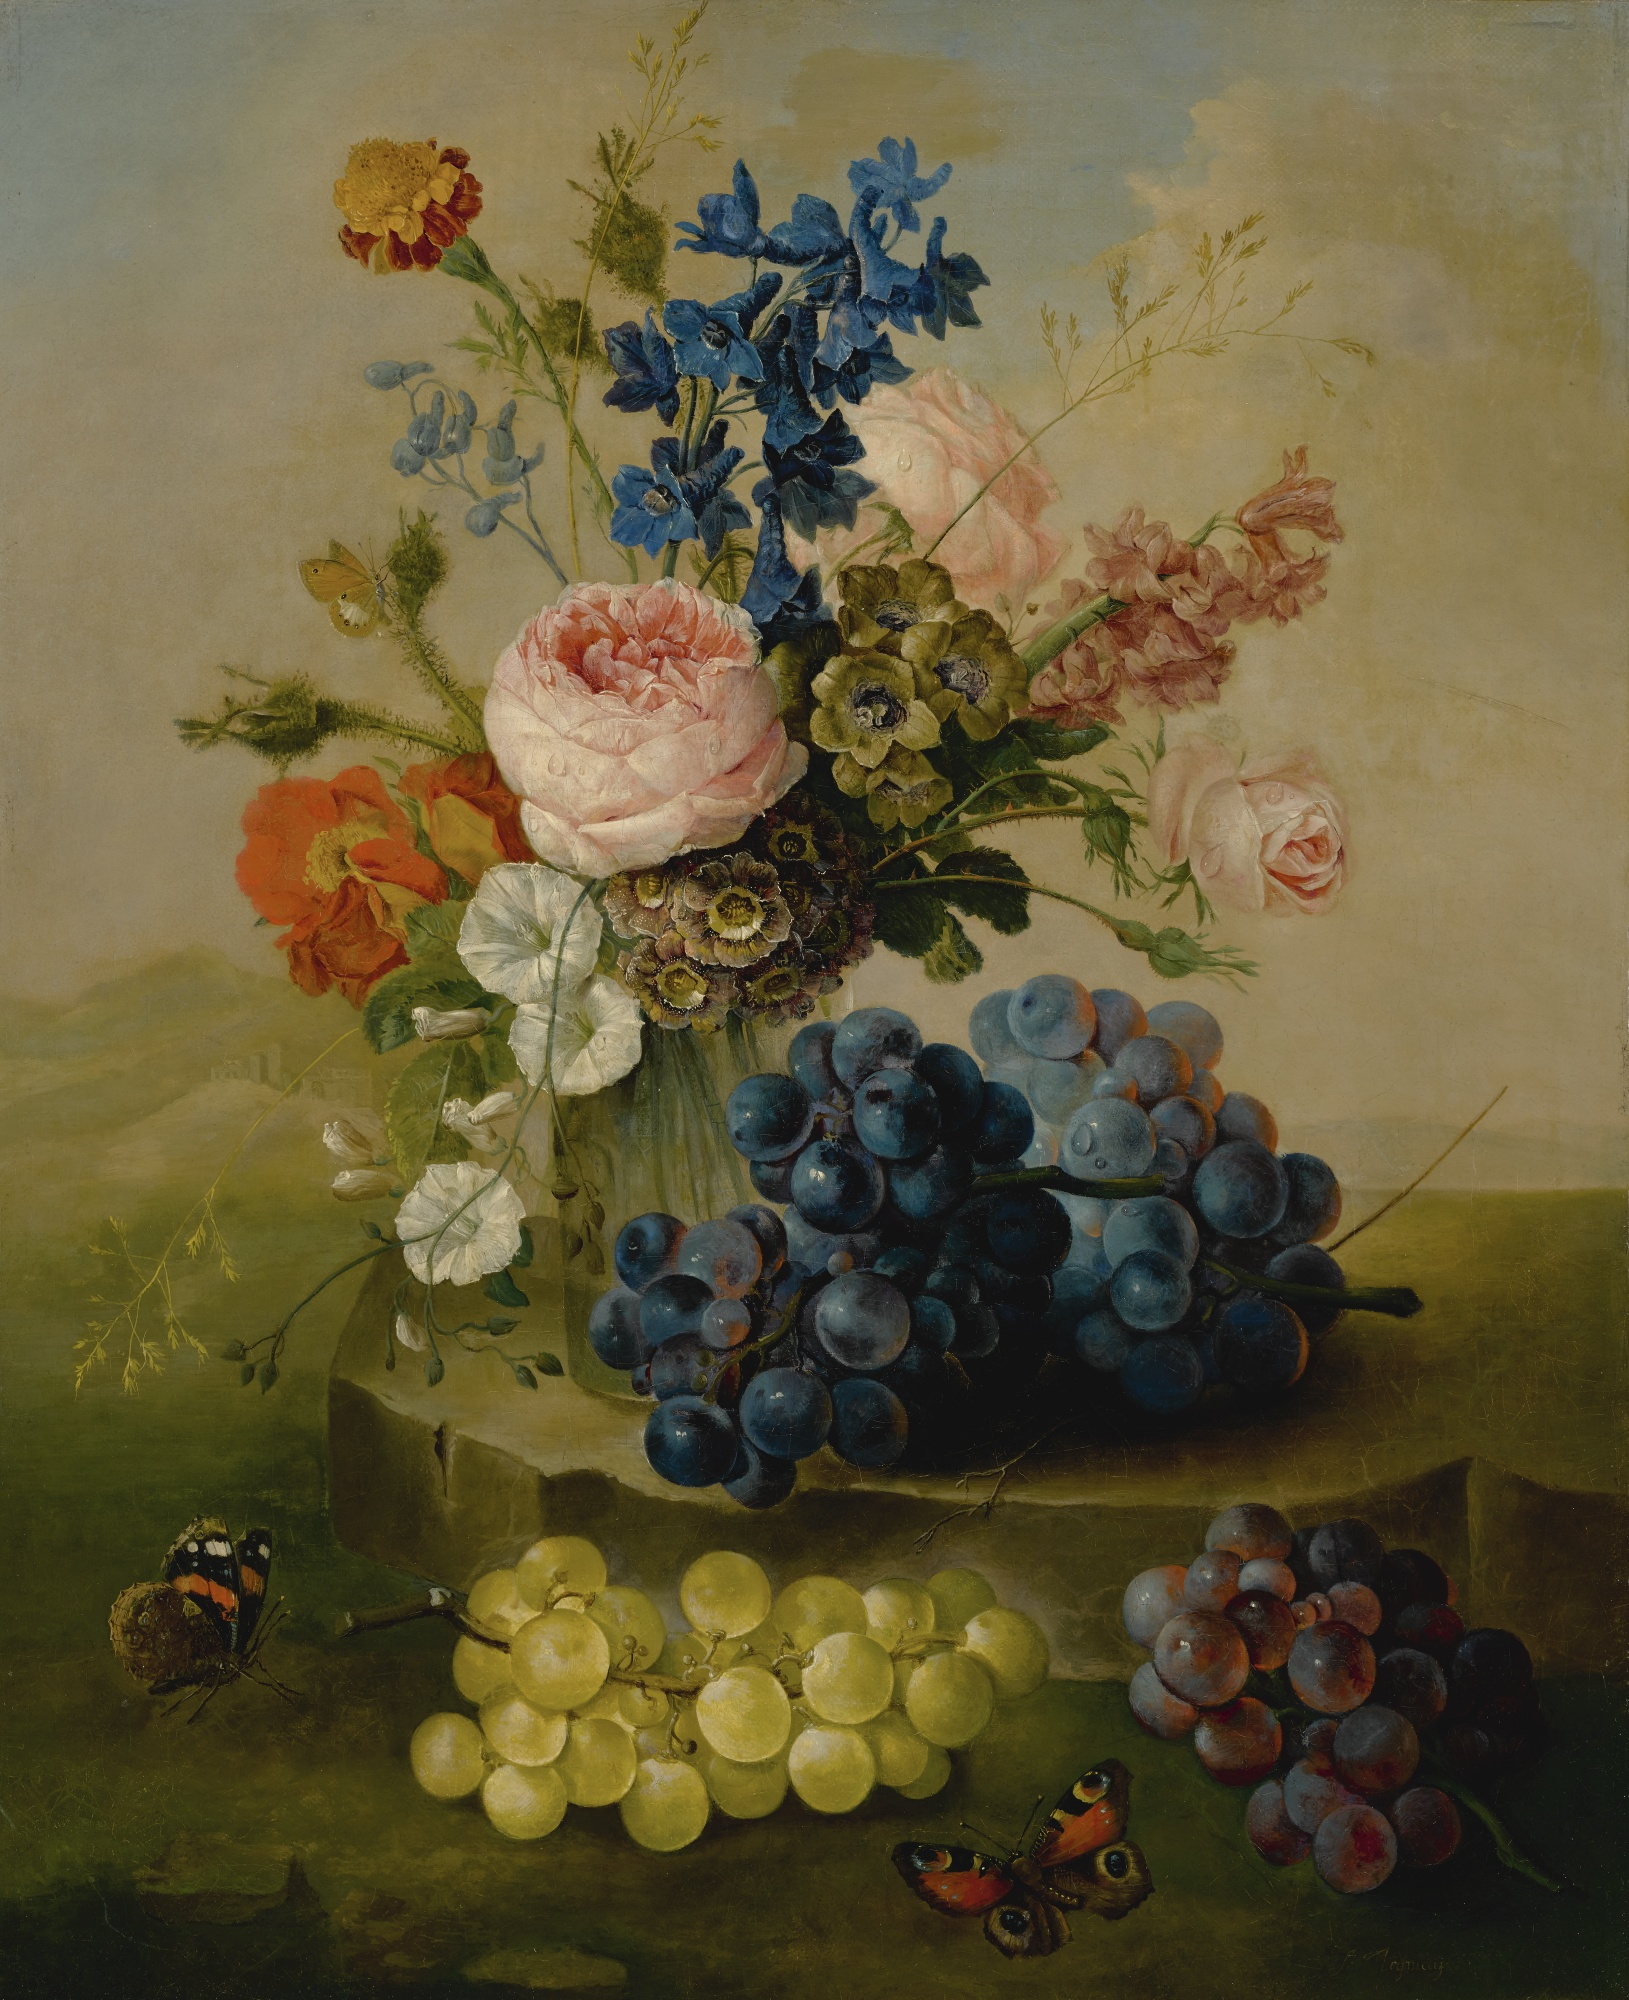 Still Life of Flowers in a Glass Vase, with Grapes, by Sebastian Wegmayr